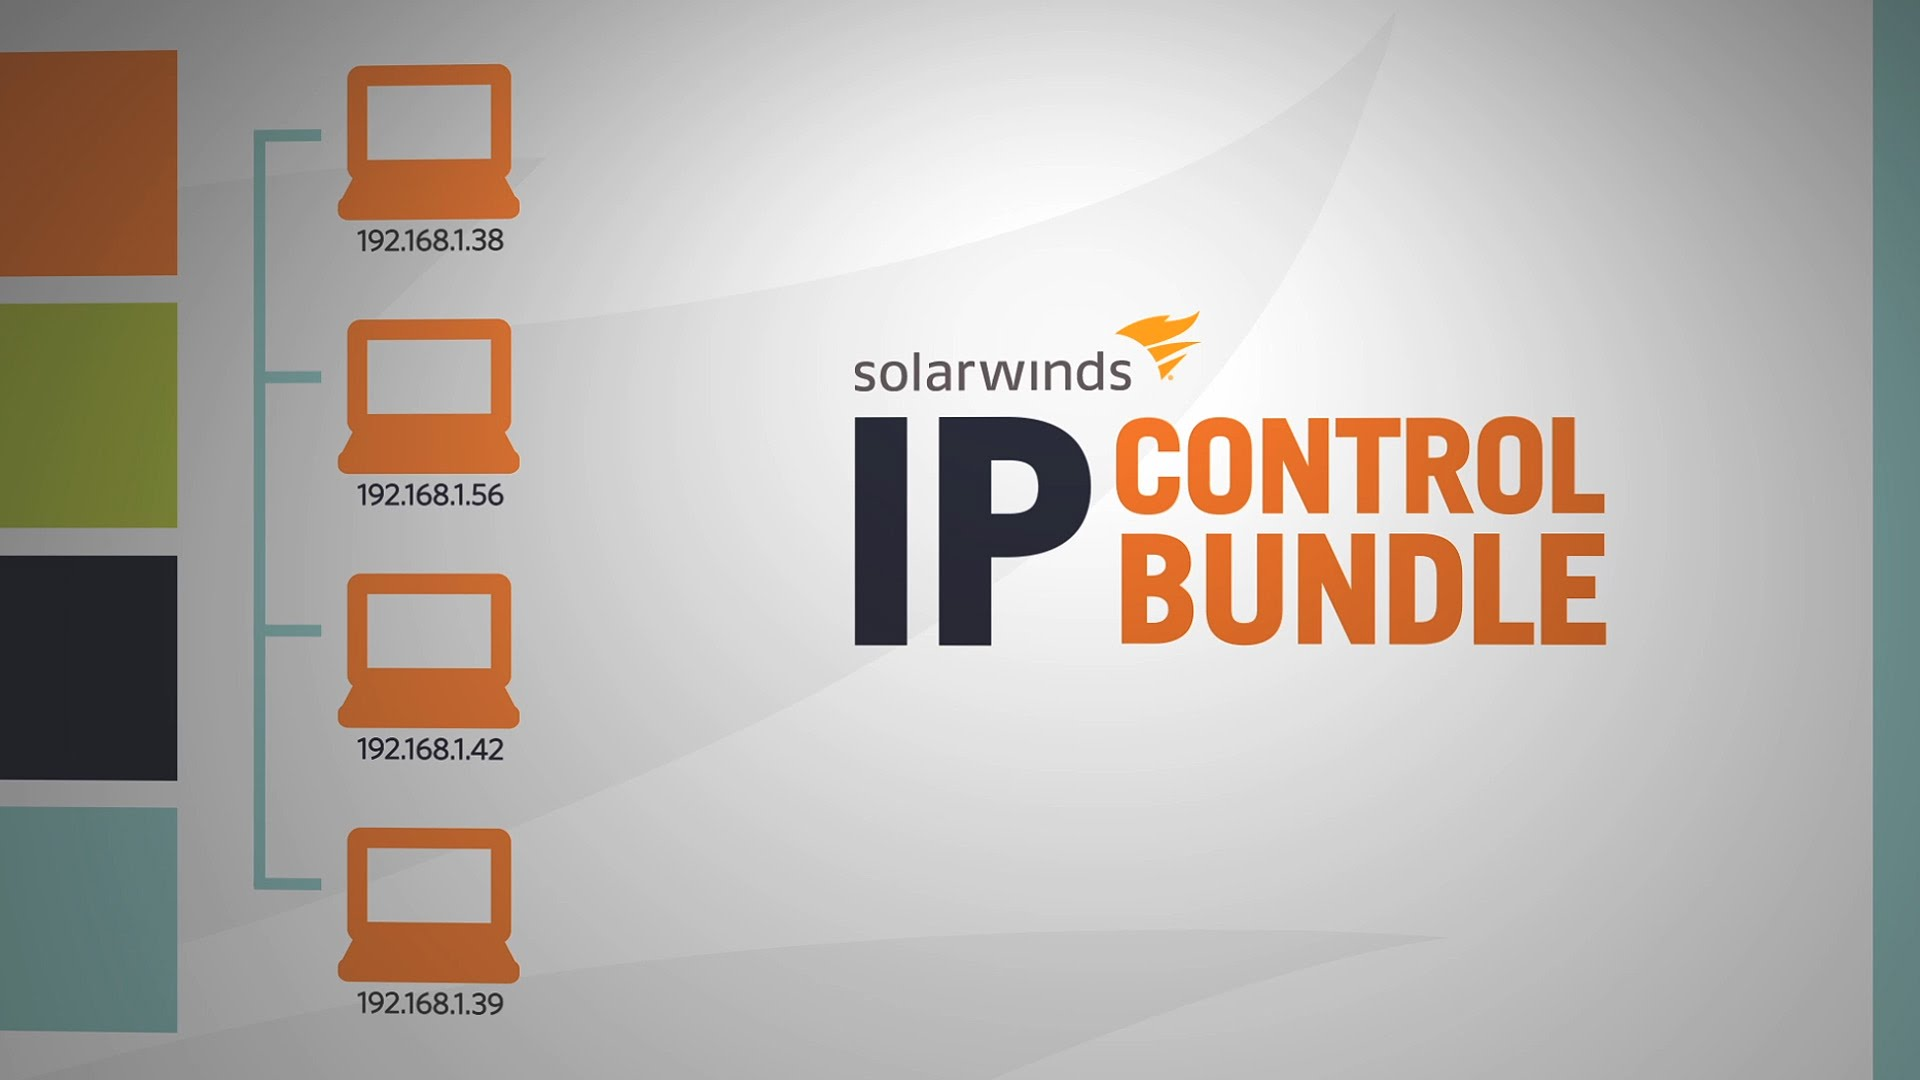 SolarWinds IP Control Bundle Download Free Full Version